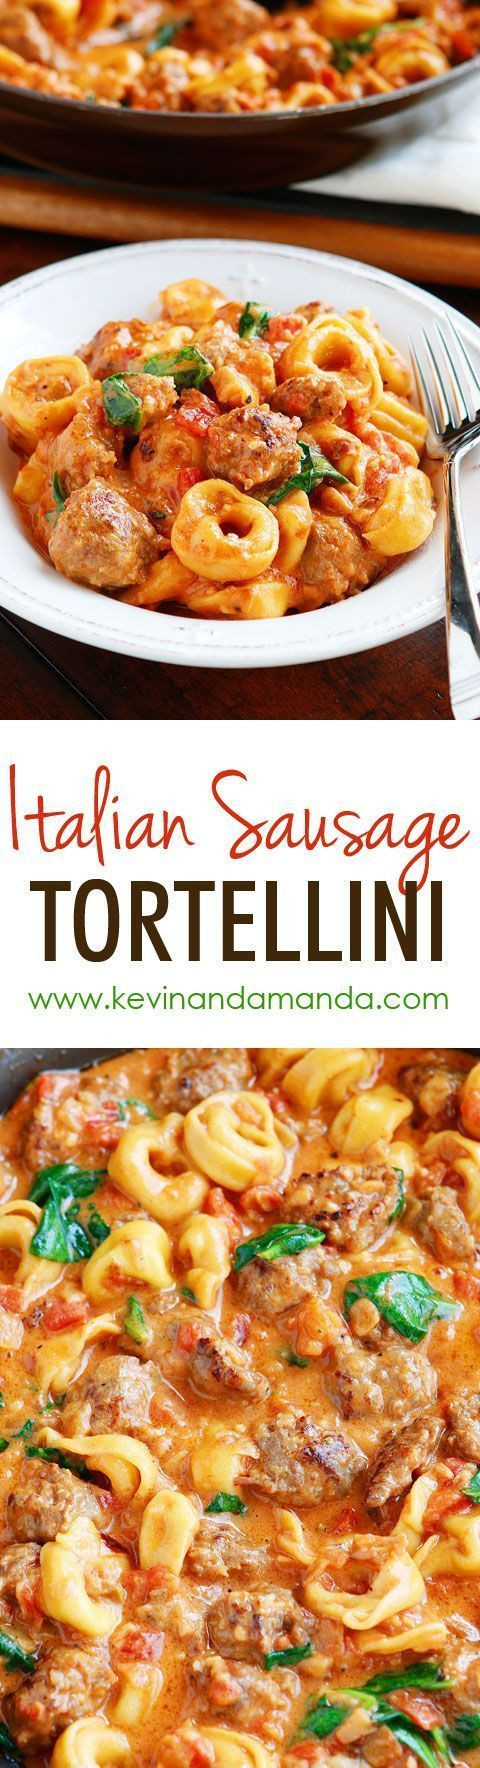 This Italian Sausage Tortellini is a MUST make!! The tomato sauce is so rich and creamy and the Italian sausage is fabulous!! Plus it all cooks in one pot so you only have one dish to wash!! Love it!!